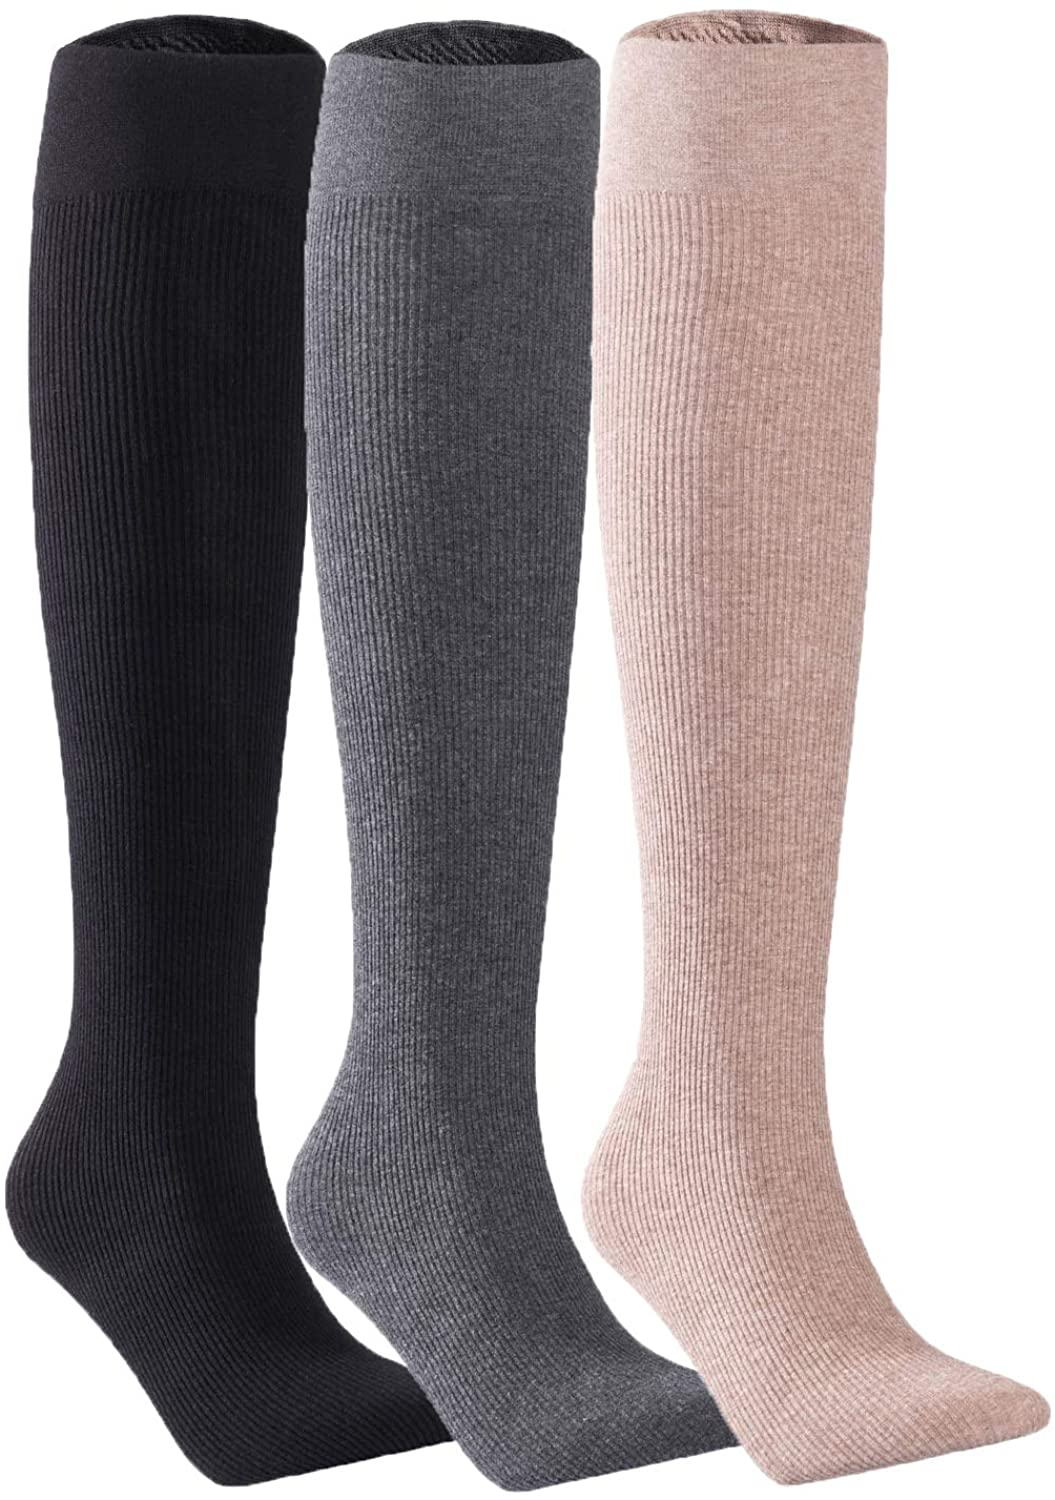 Lian LifeStyle Big Girl Women's Exquisite Thigh High Cotton Socks L1888 Size 6-9